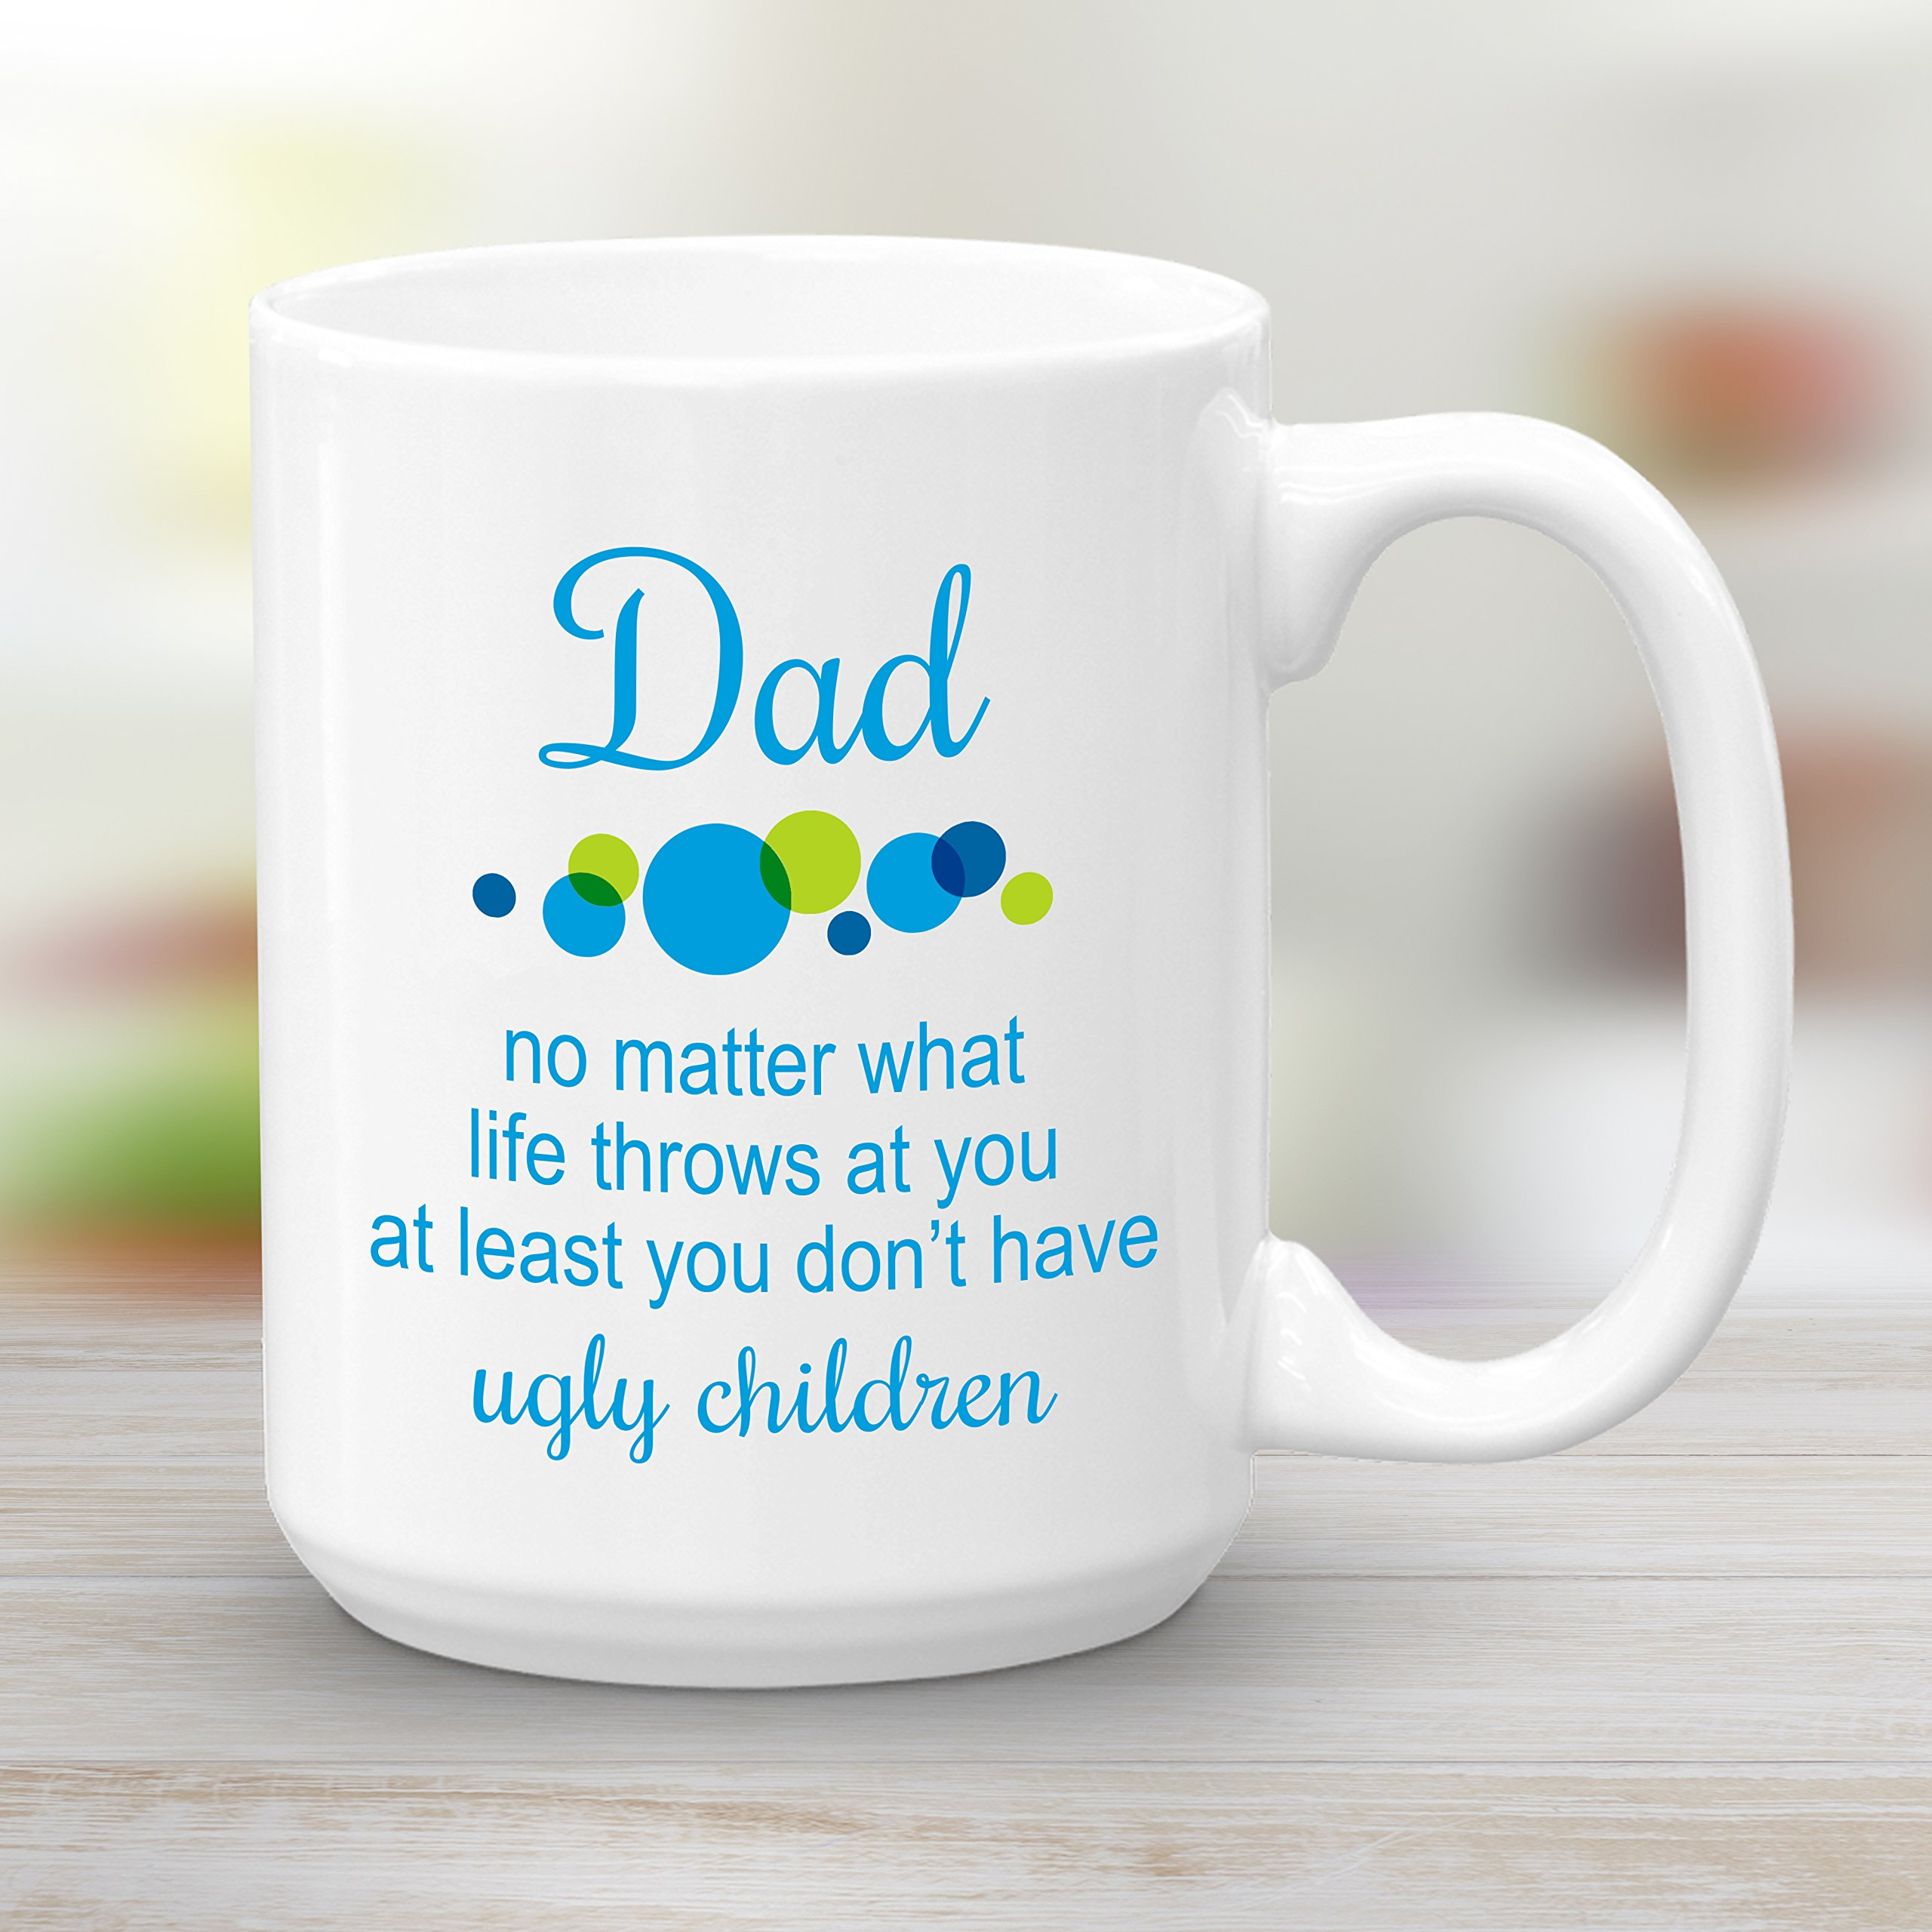 Dad no matter what life throws at you at least you don't have ugly children, Large 15 oz Coffee Mug, Funny Gift